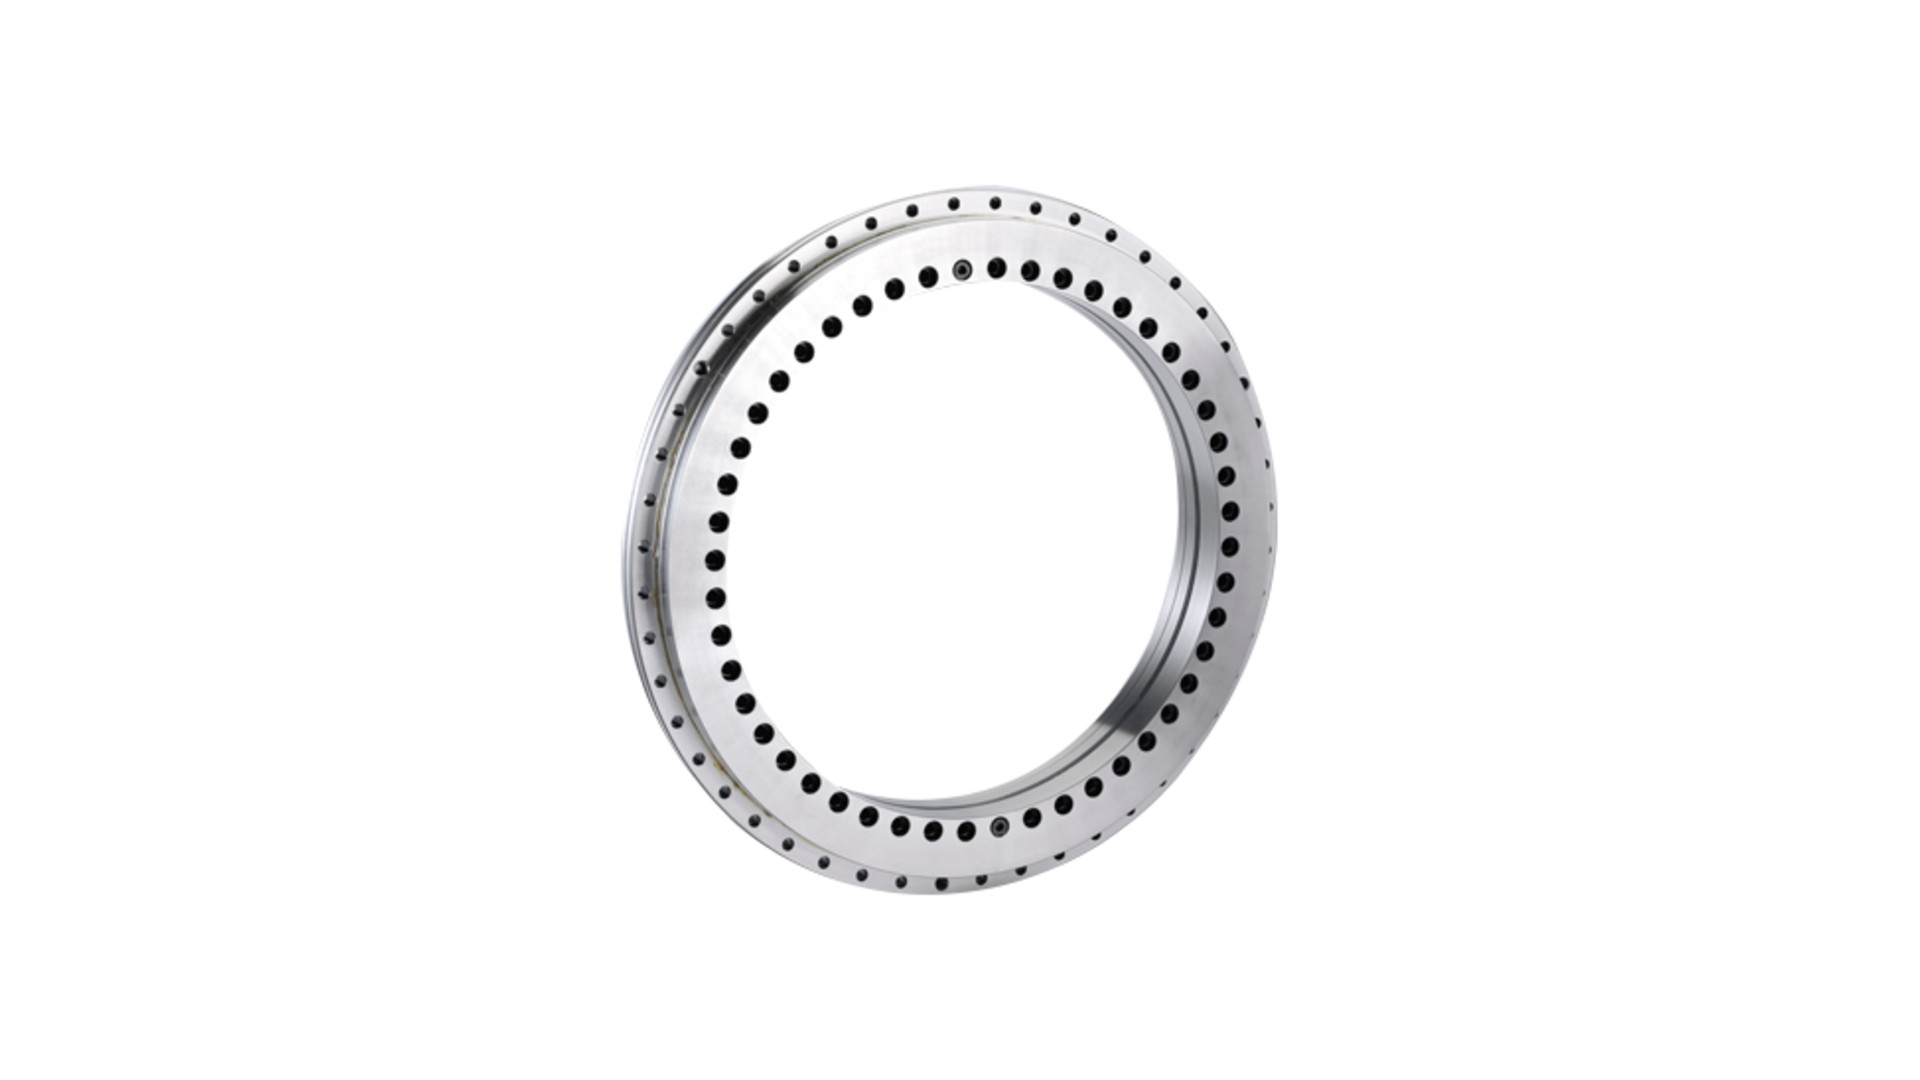 combined axial radial load bearings